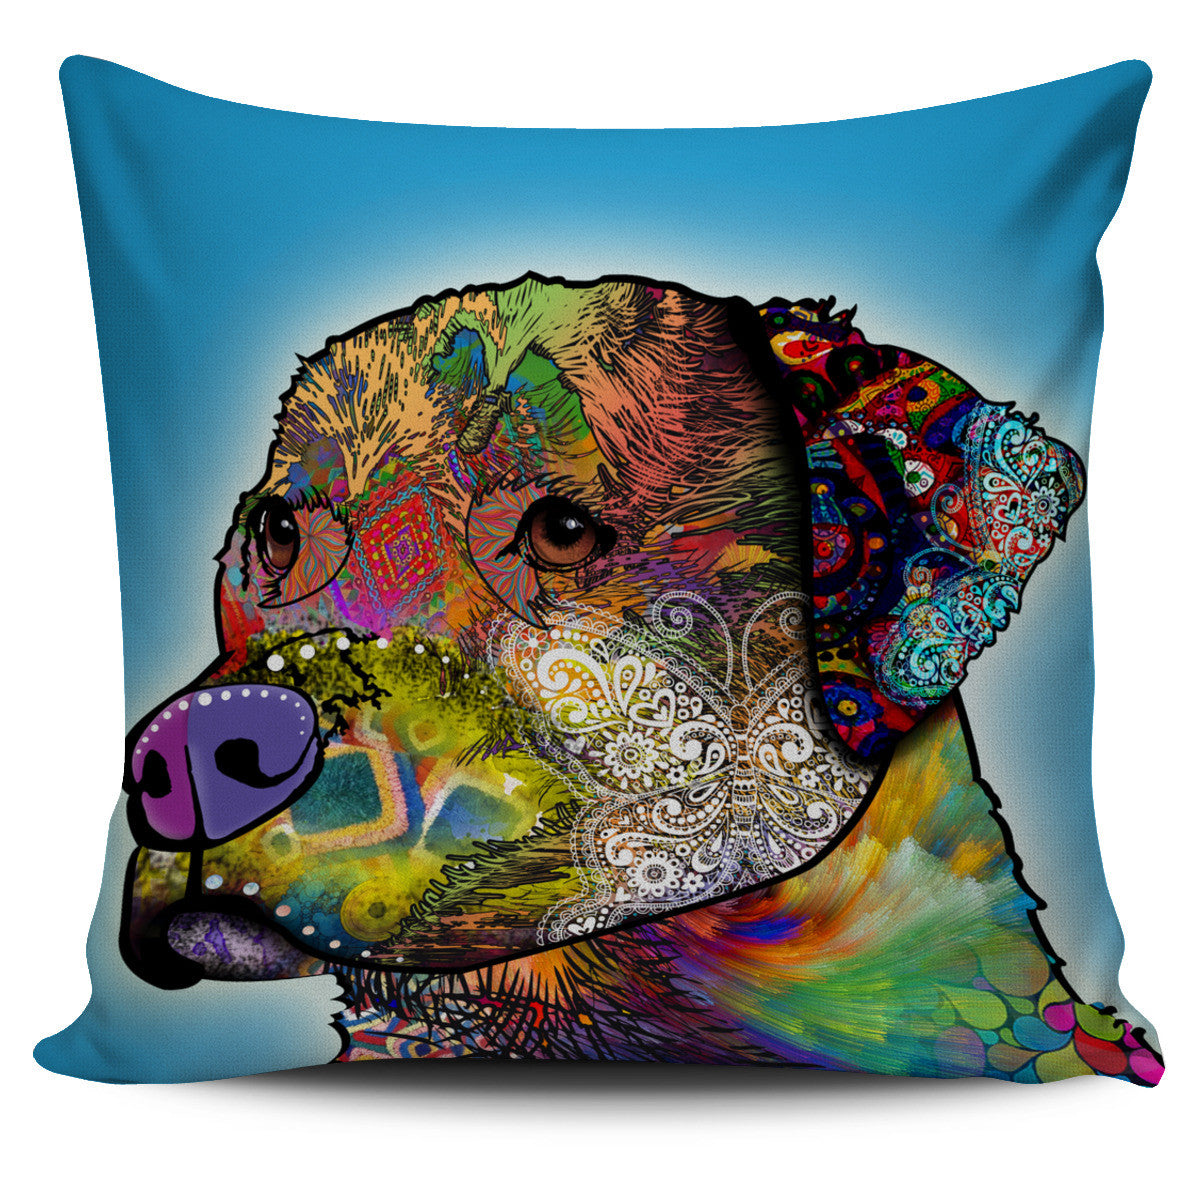 Labrador Series II Pillow Cover